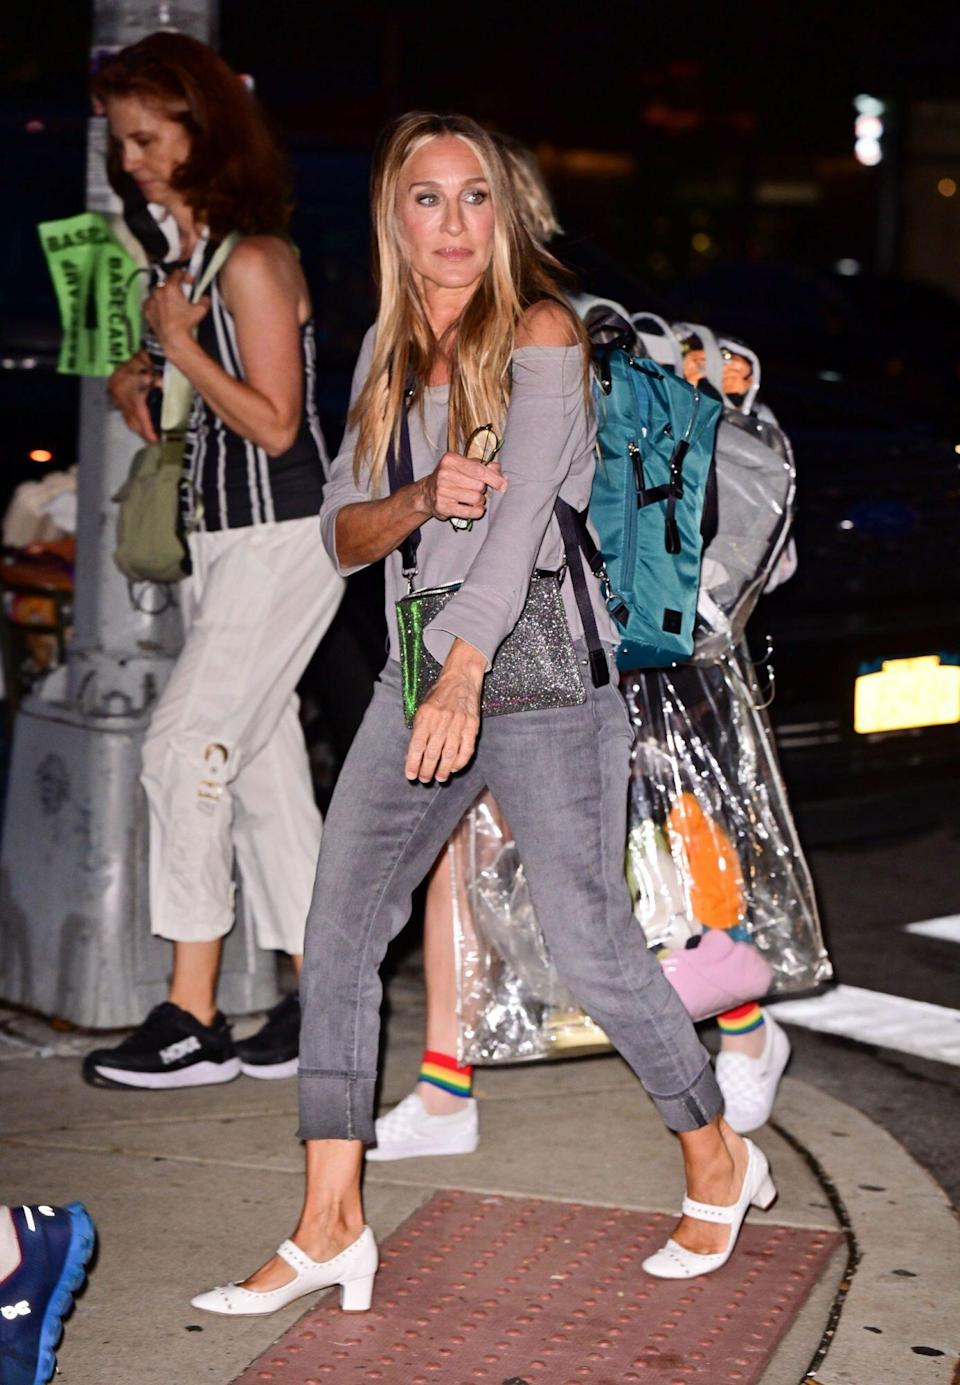 SJP is bringing back this microbag trend